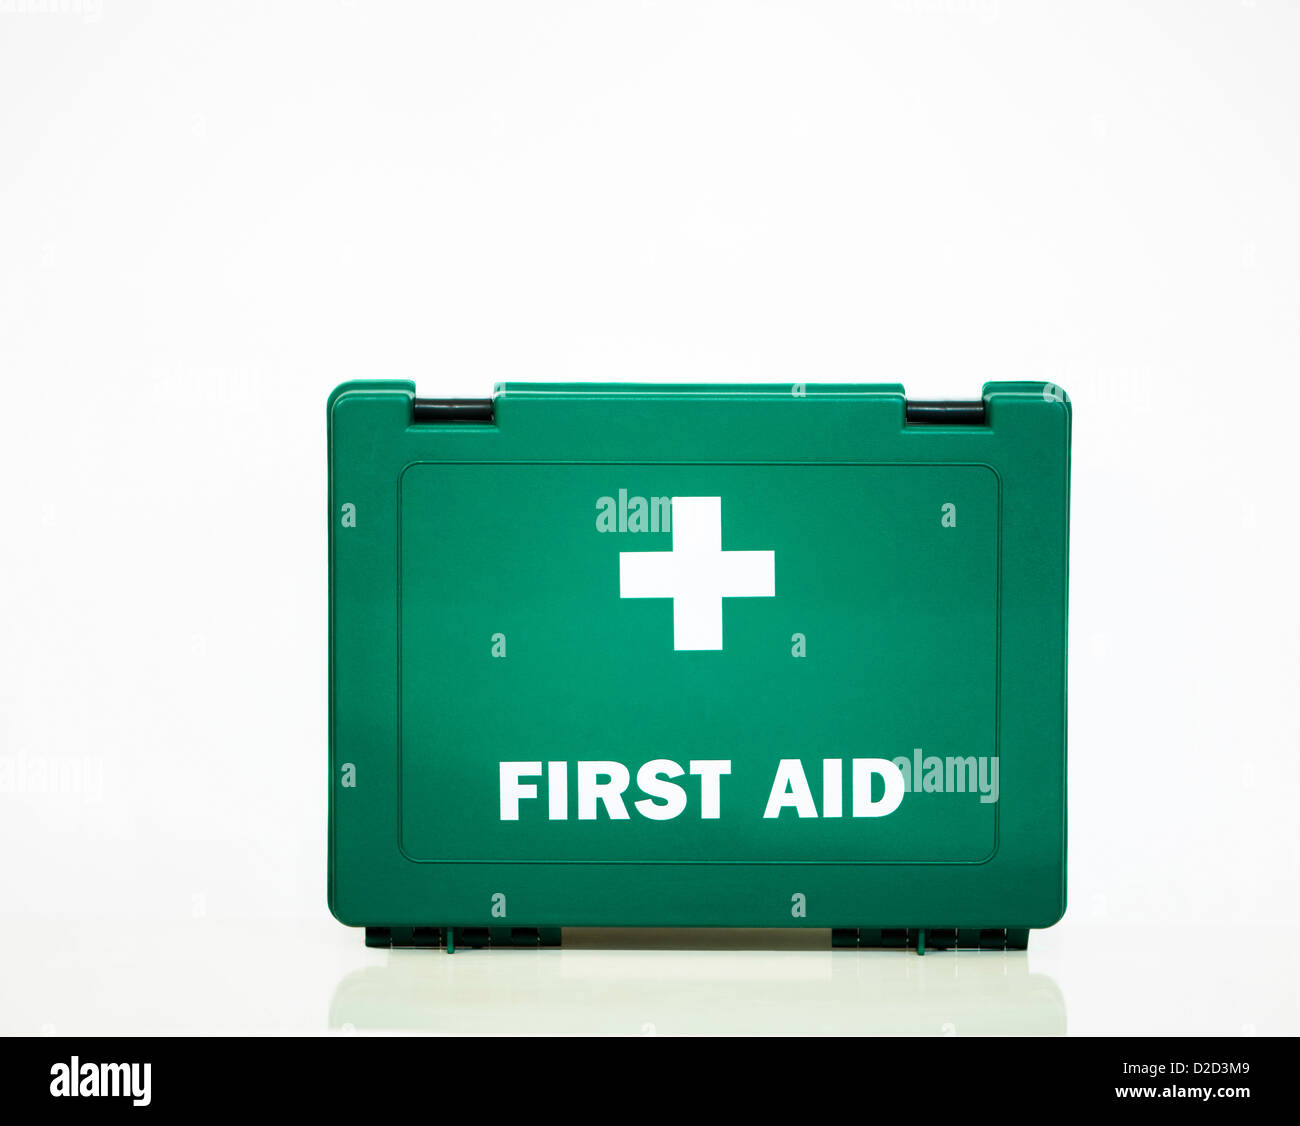 First aid box - Stock Image